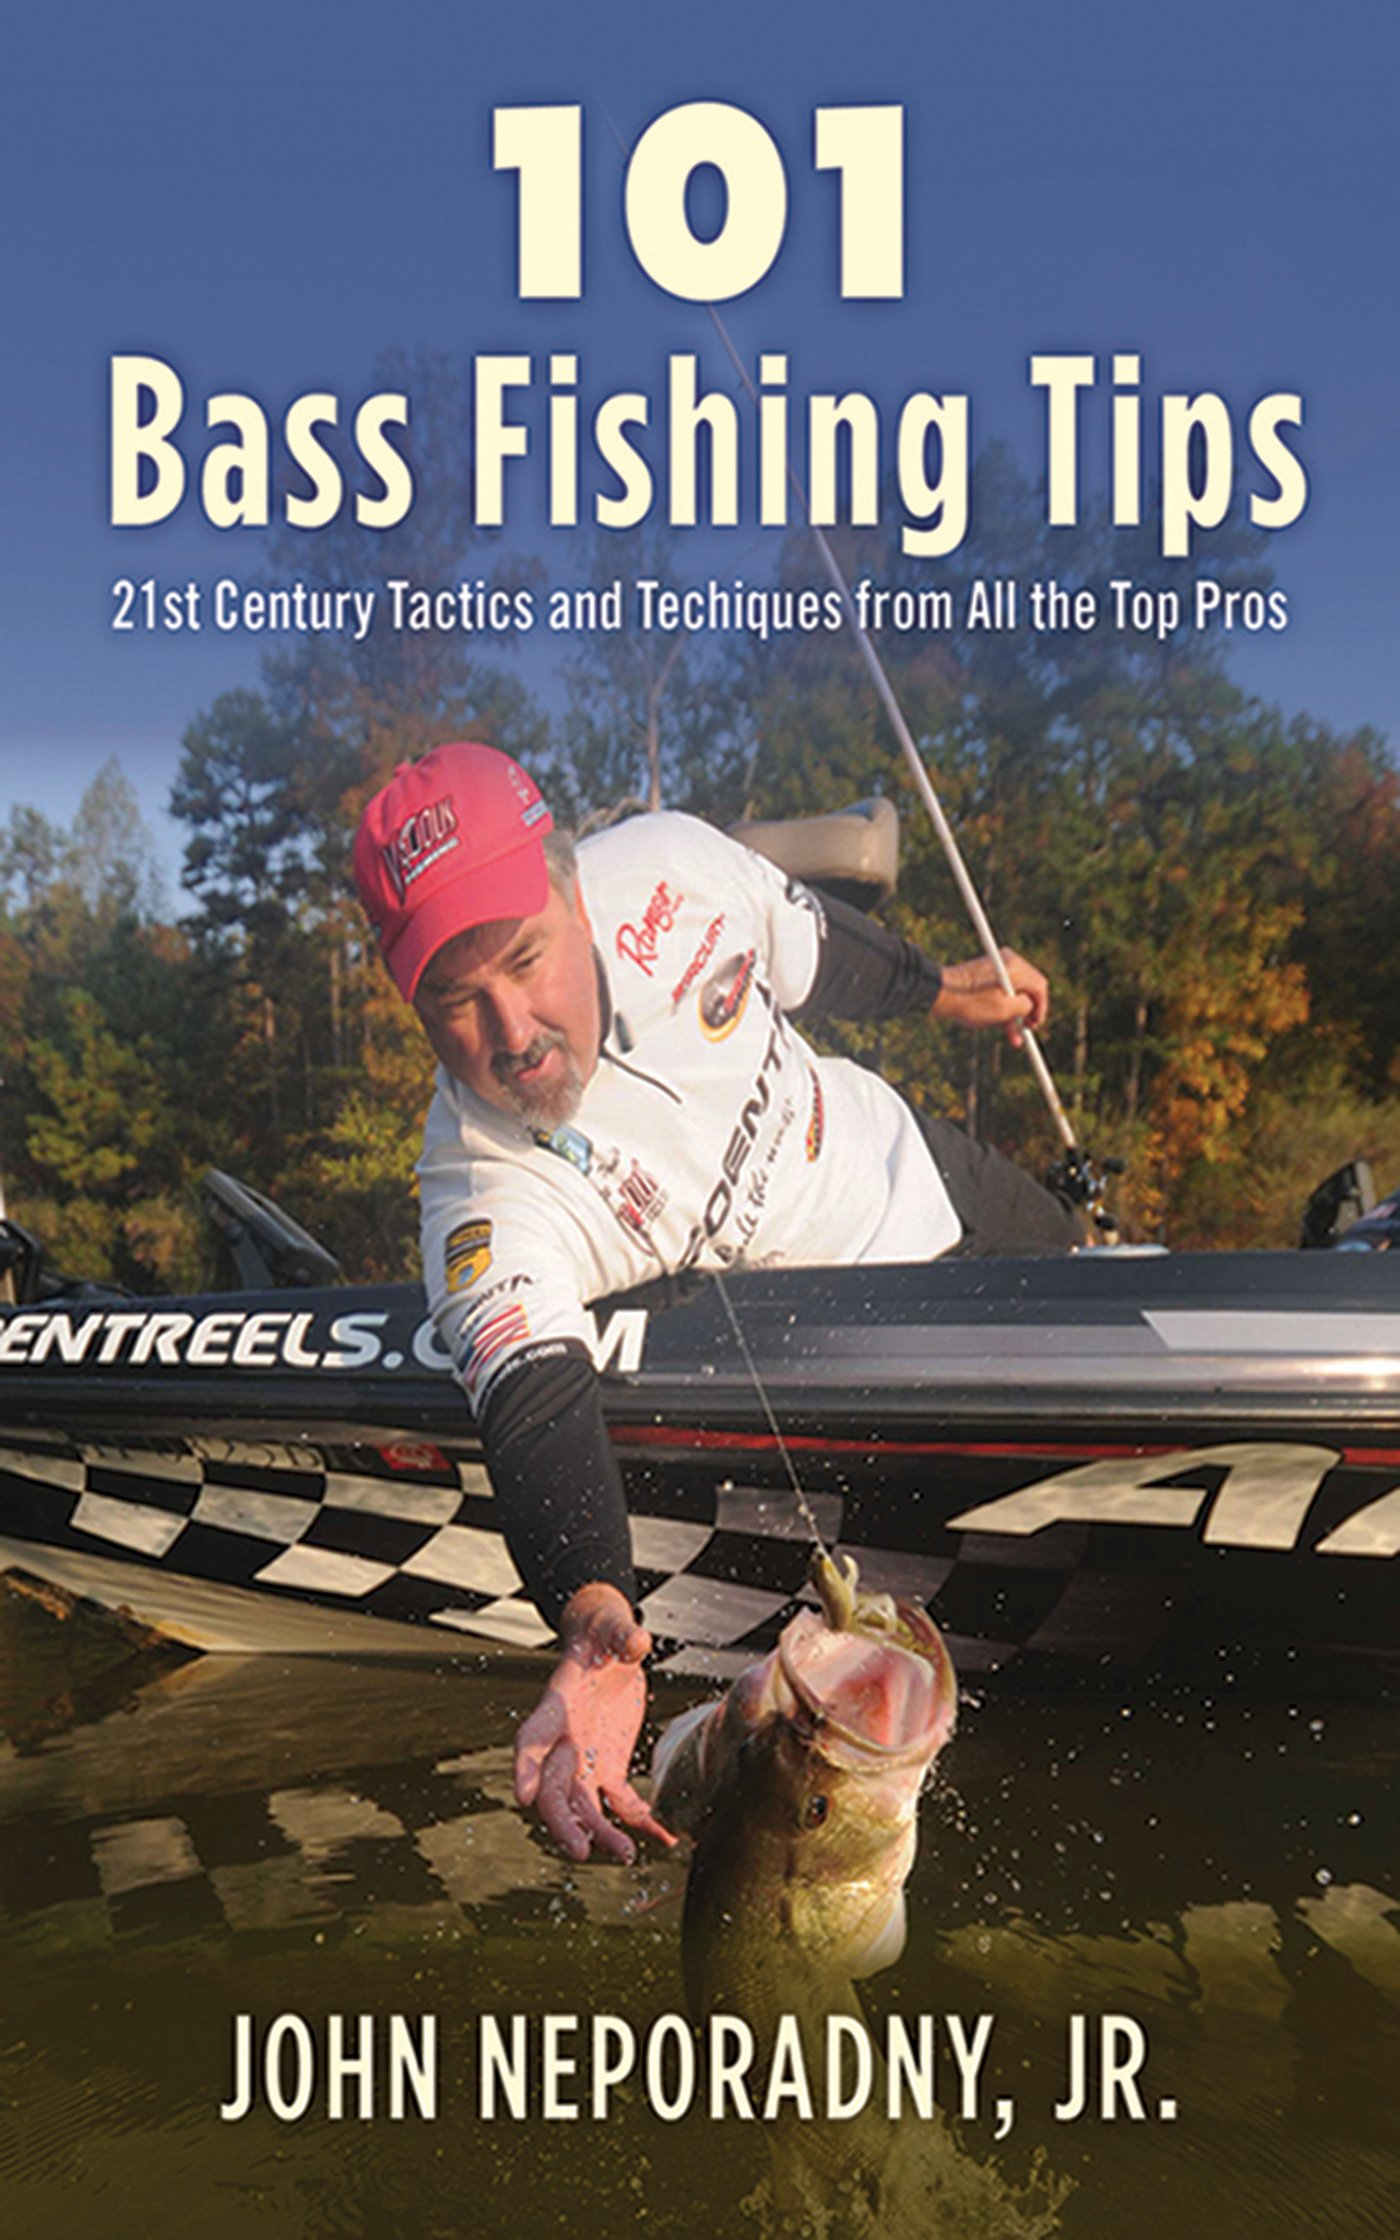 101 Bass Fishing Tips: Twenty-First Century Bassing Tactics and Techniques  from All the Top Pros: John Neporadny: 9781620877920: Amazon.com: Books